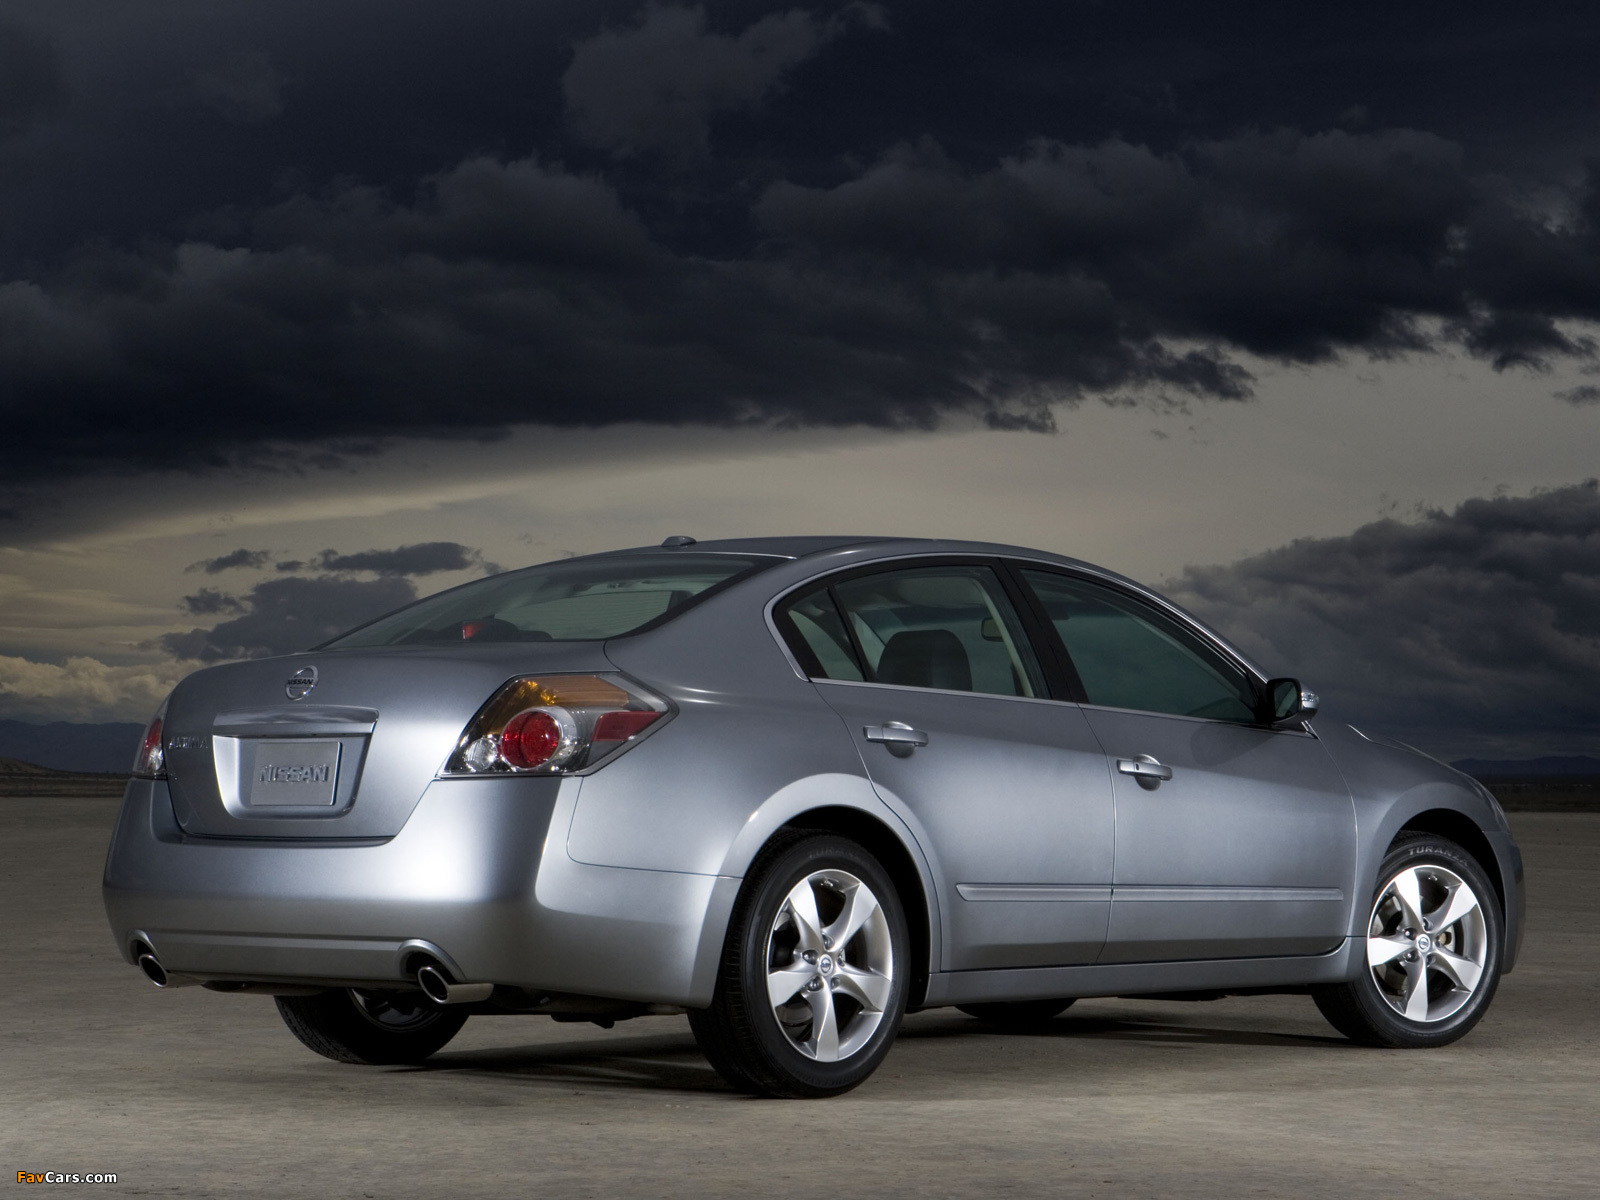 Wallpapers Of Nissan Altima 2006 09 1600x1200